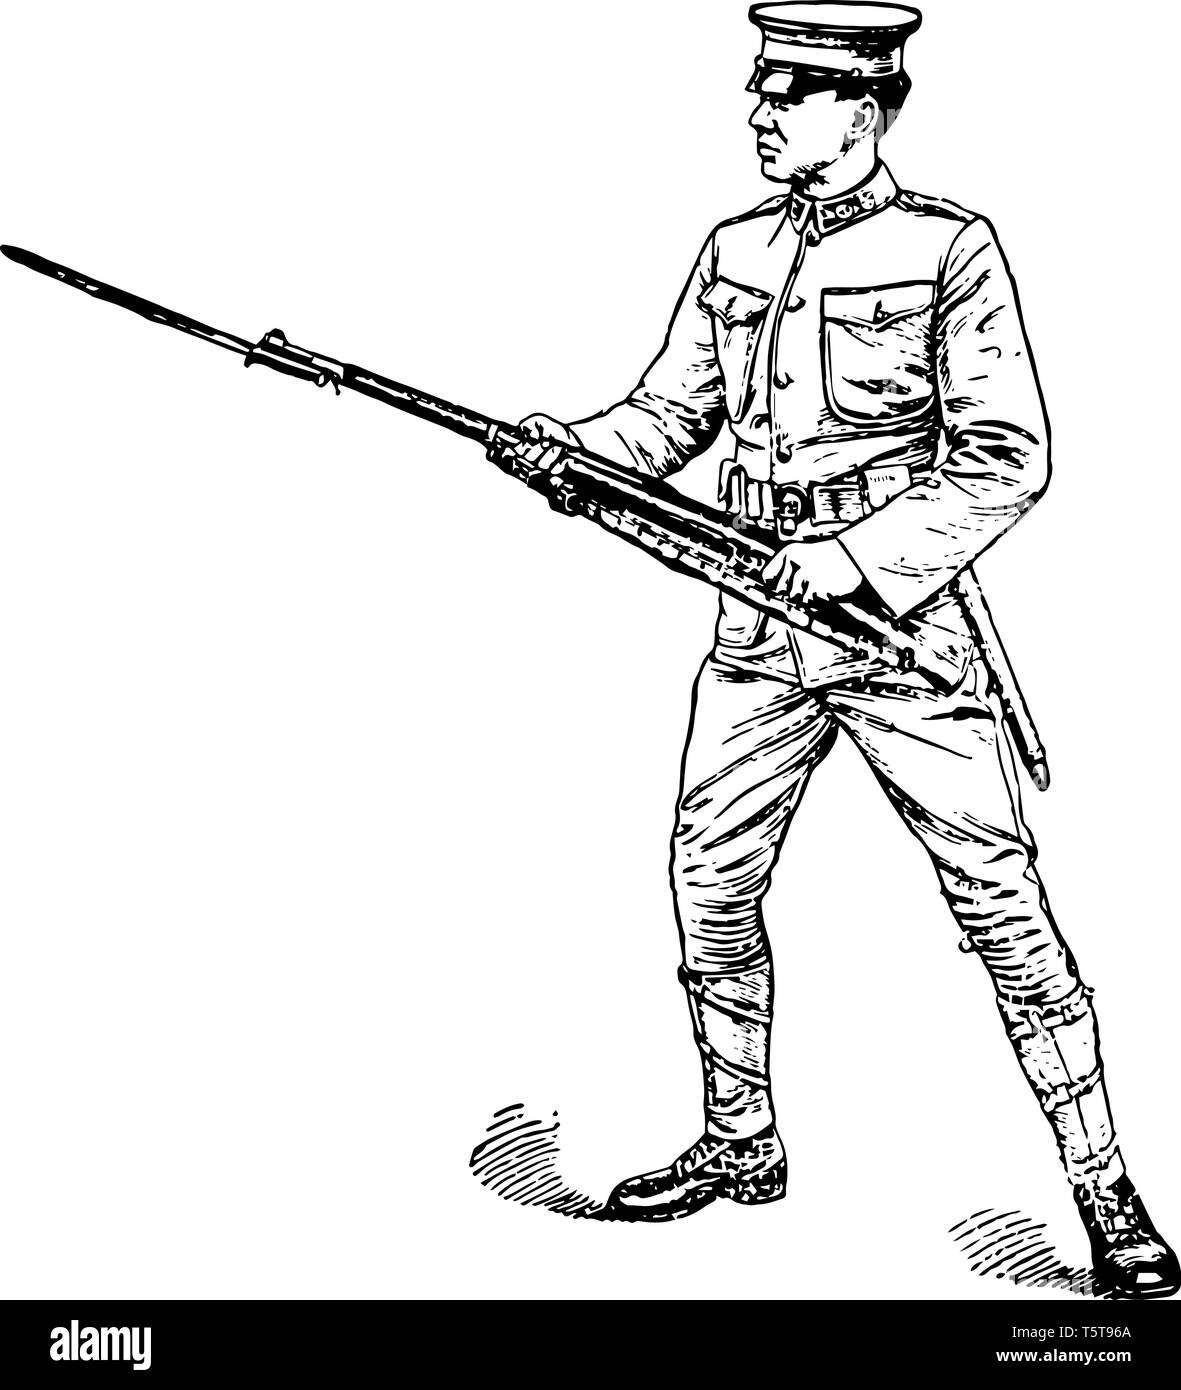 Left Handed Rifle where the men may be permitted to wield the rifle left handed, vintage line drawing or engraving illustration. - Stock Image